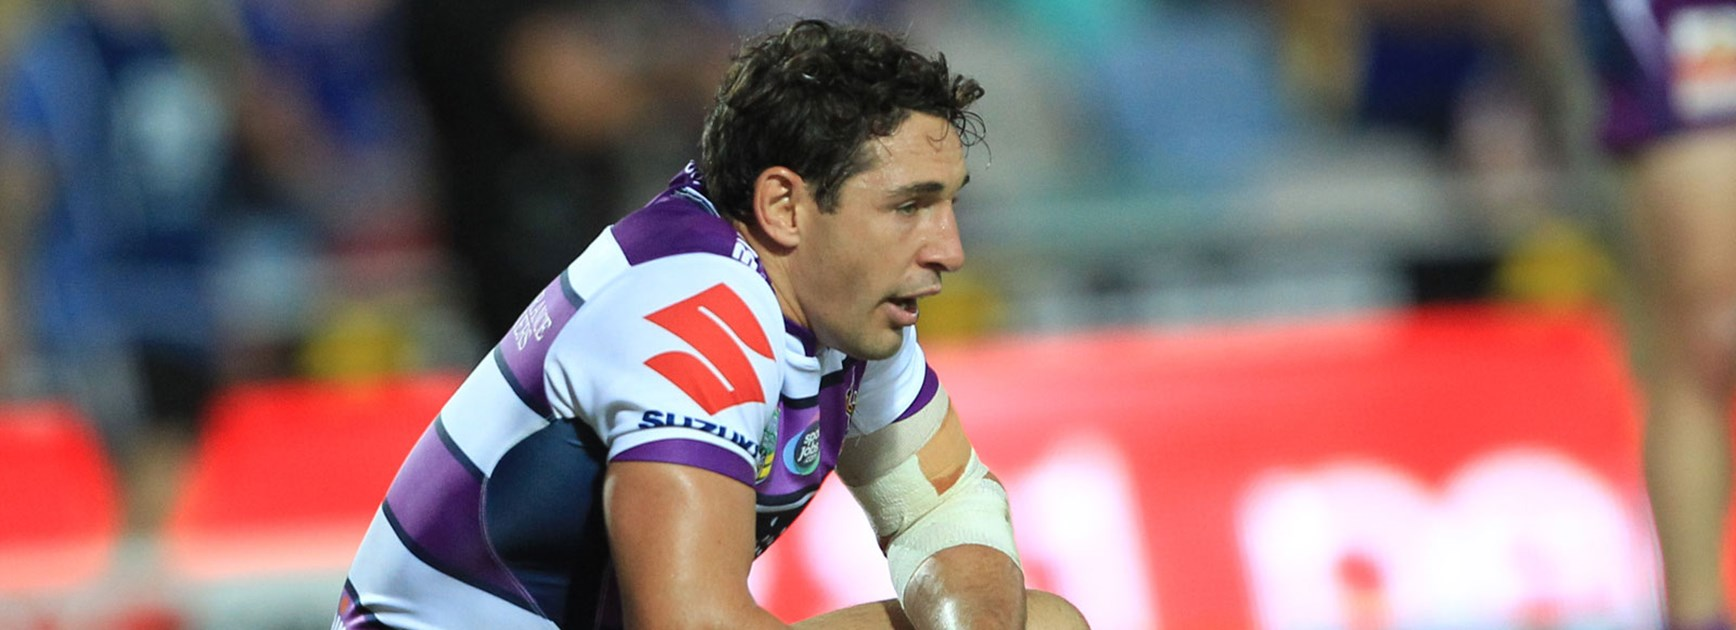 Storm superstar Billy Slater will need to be fully fit to be selected in the Queensland team for Game One.